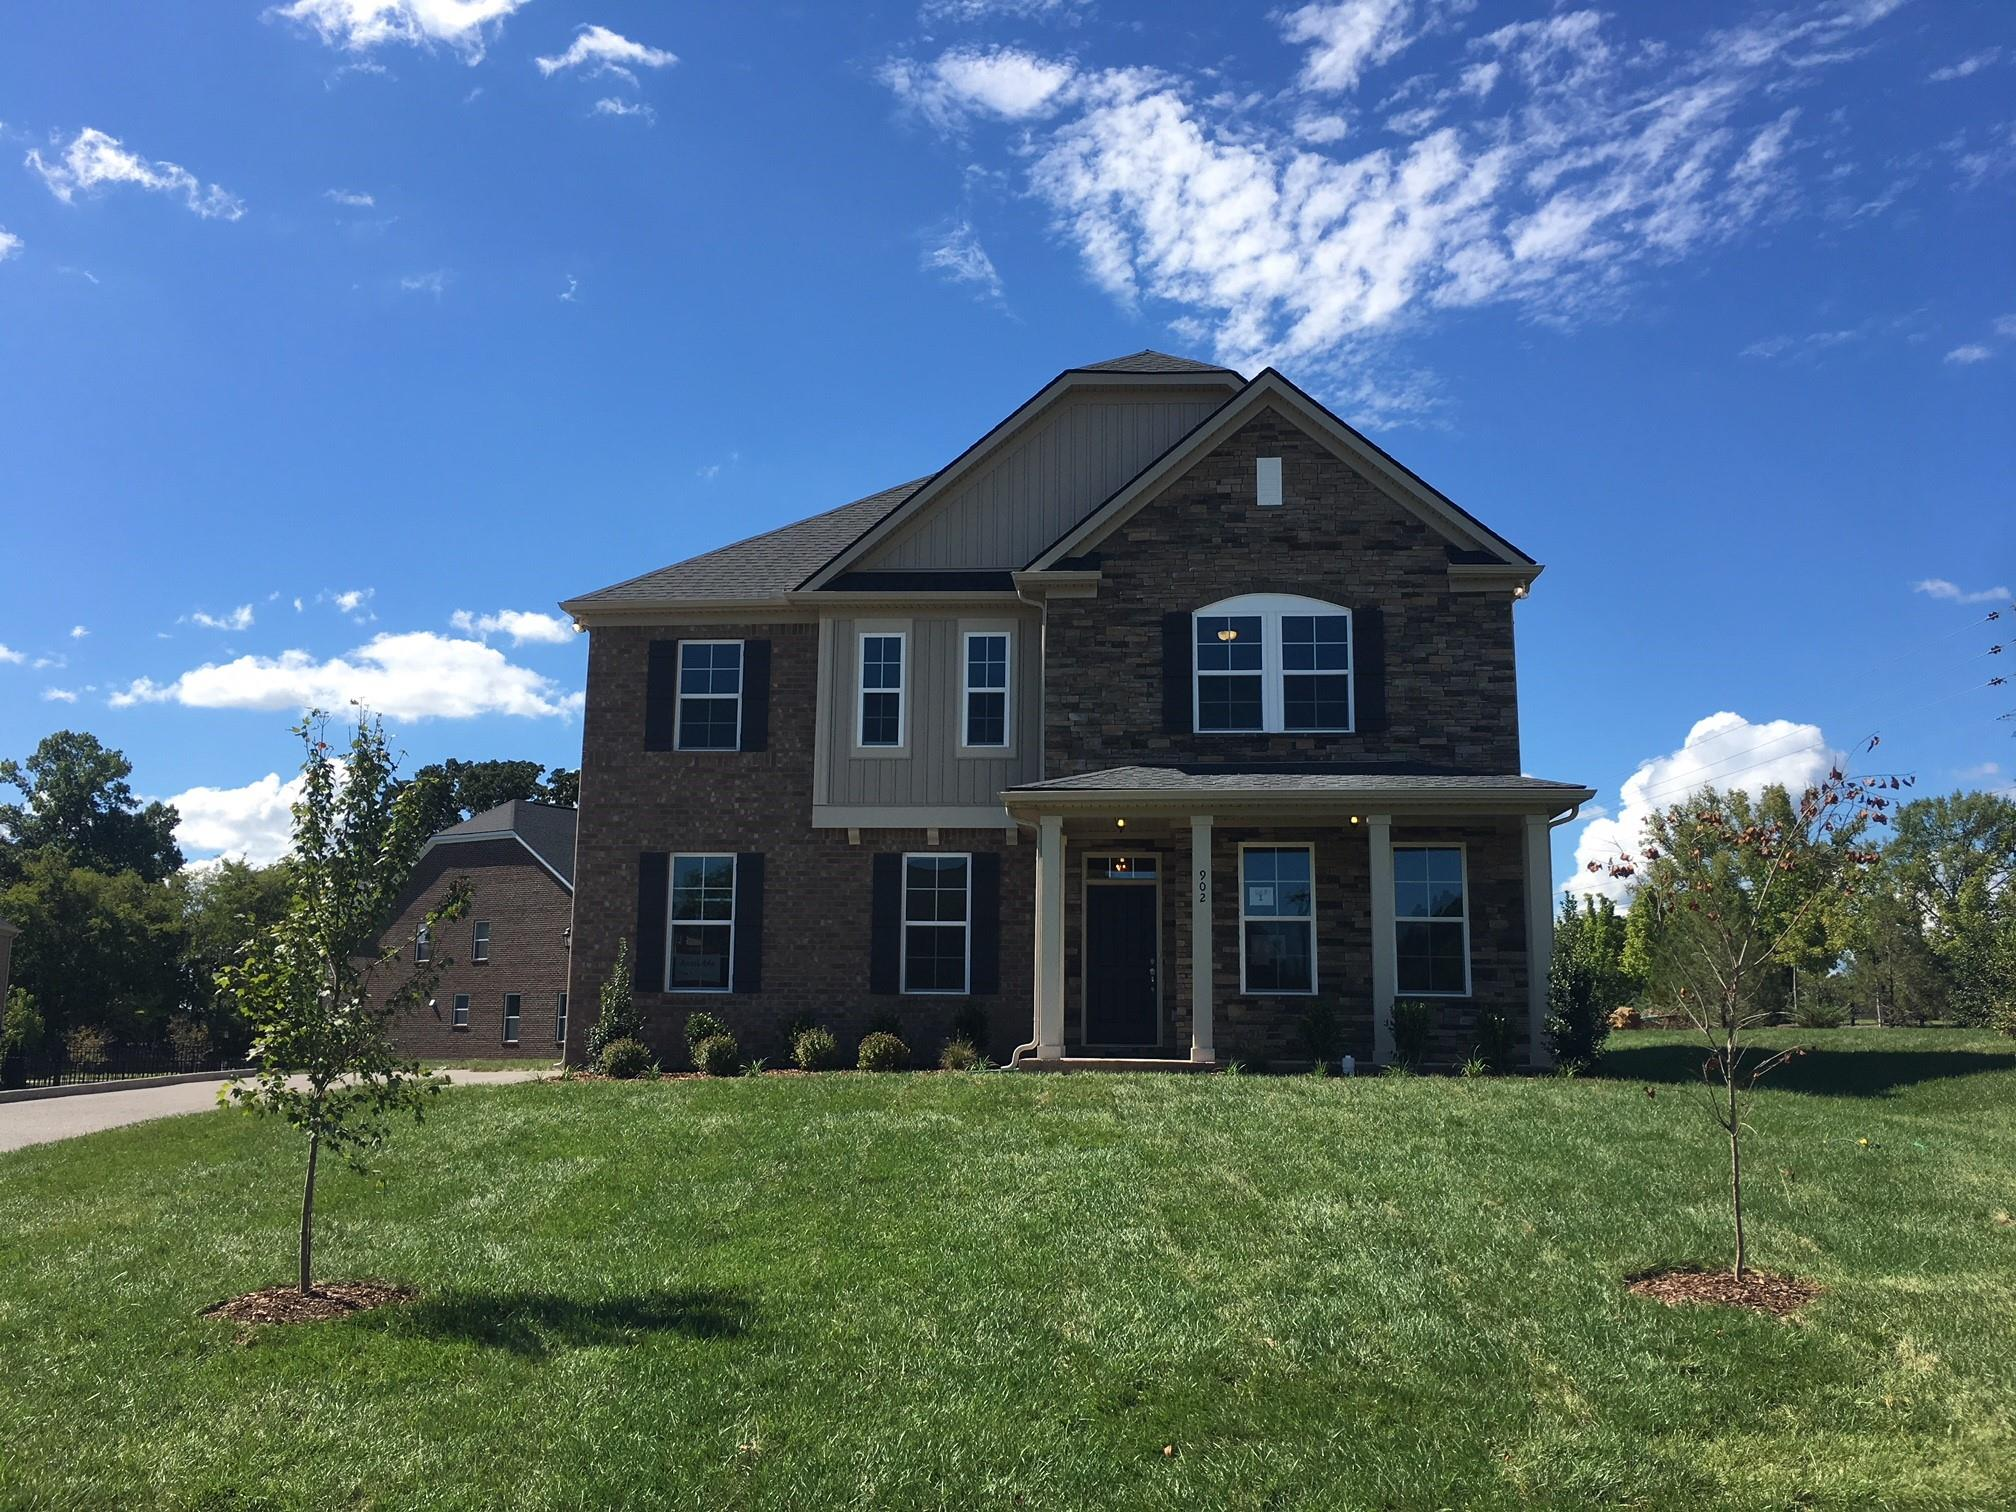 902 Whittmore Dr., Nolensville, TN 37135